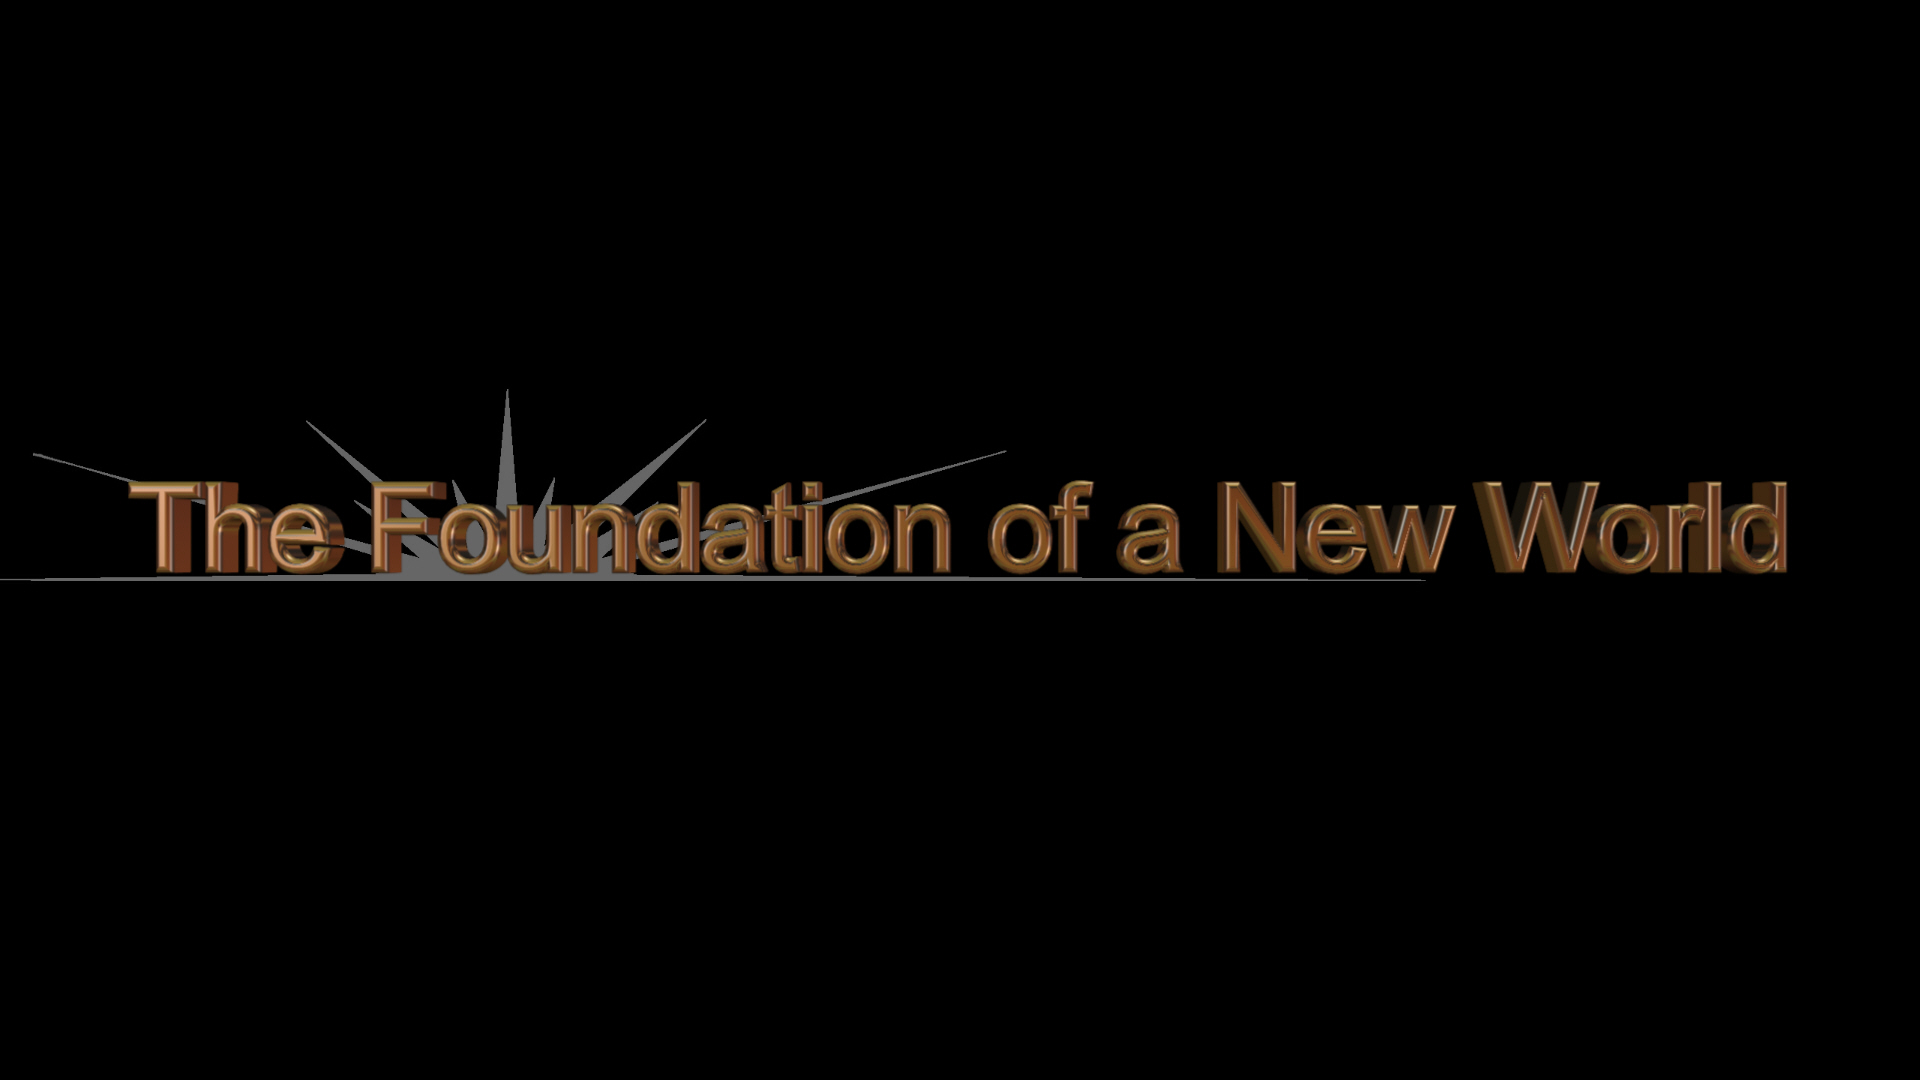 The Foundation of a New World, A New Non-Profit, Announces Launch to Overcome Societal Challenges of Poverty, Climate Change, and Exploitation 25